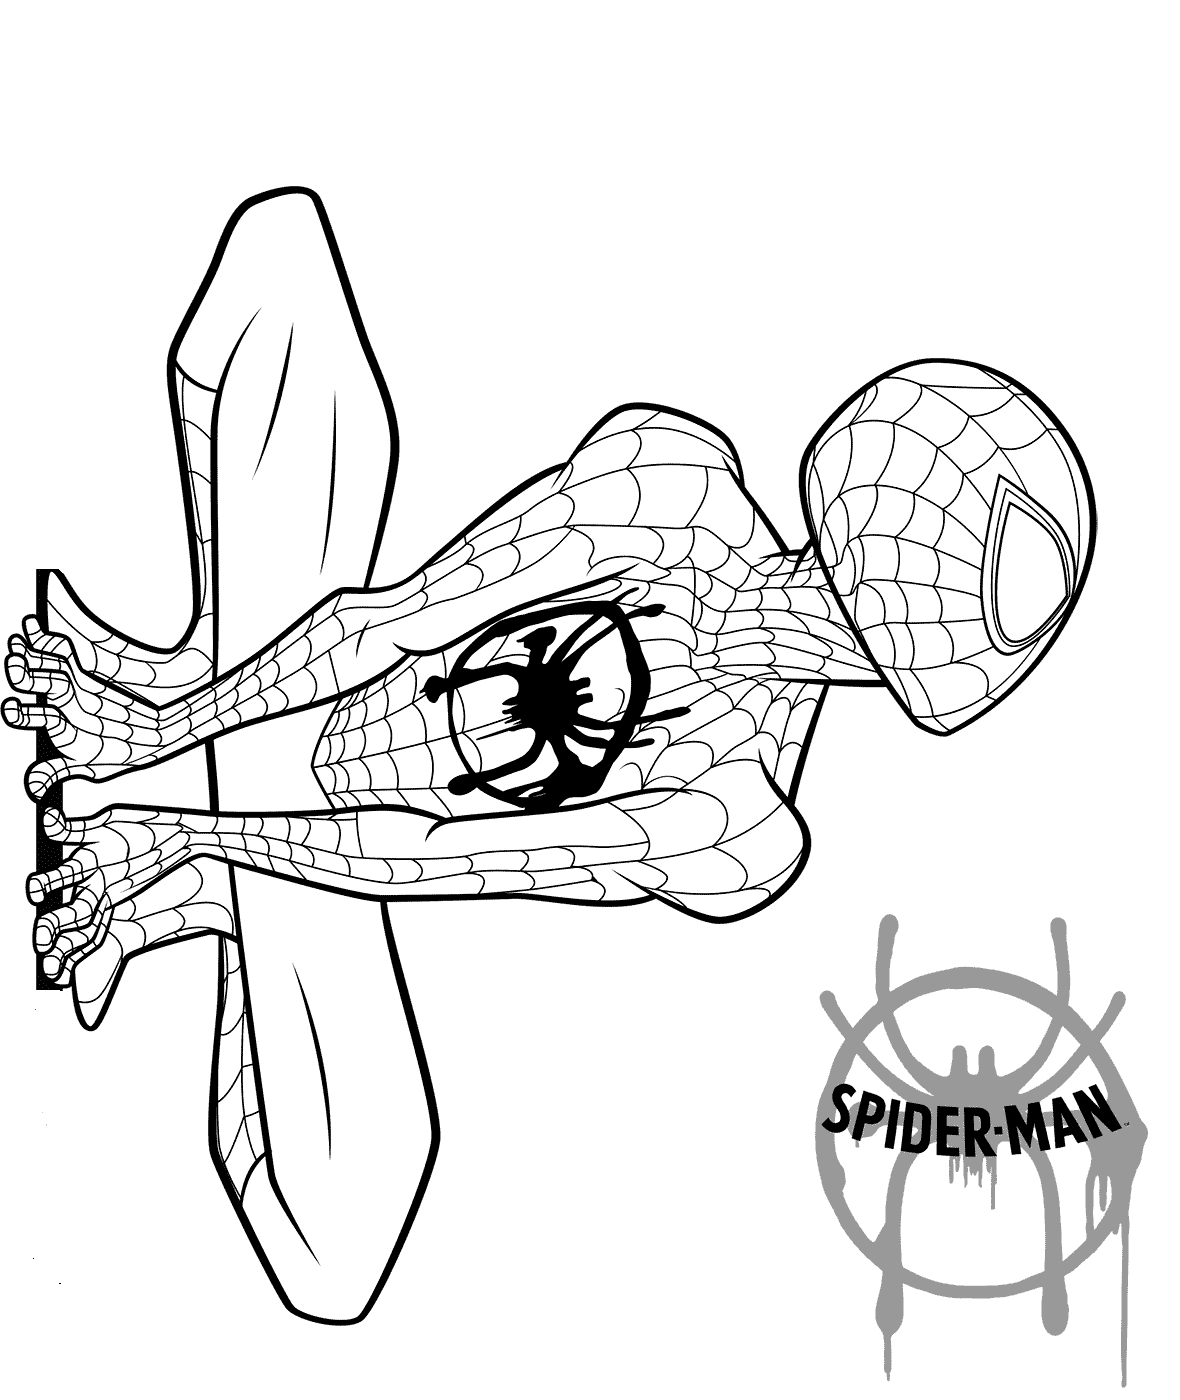 Spider Man Into The Spider Verse Coloring Page Spiderman Coloring Coloring Pages Spider Verse